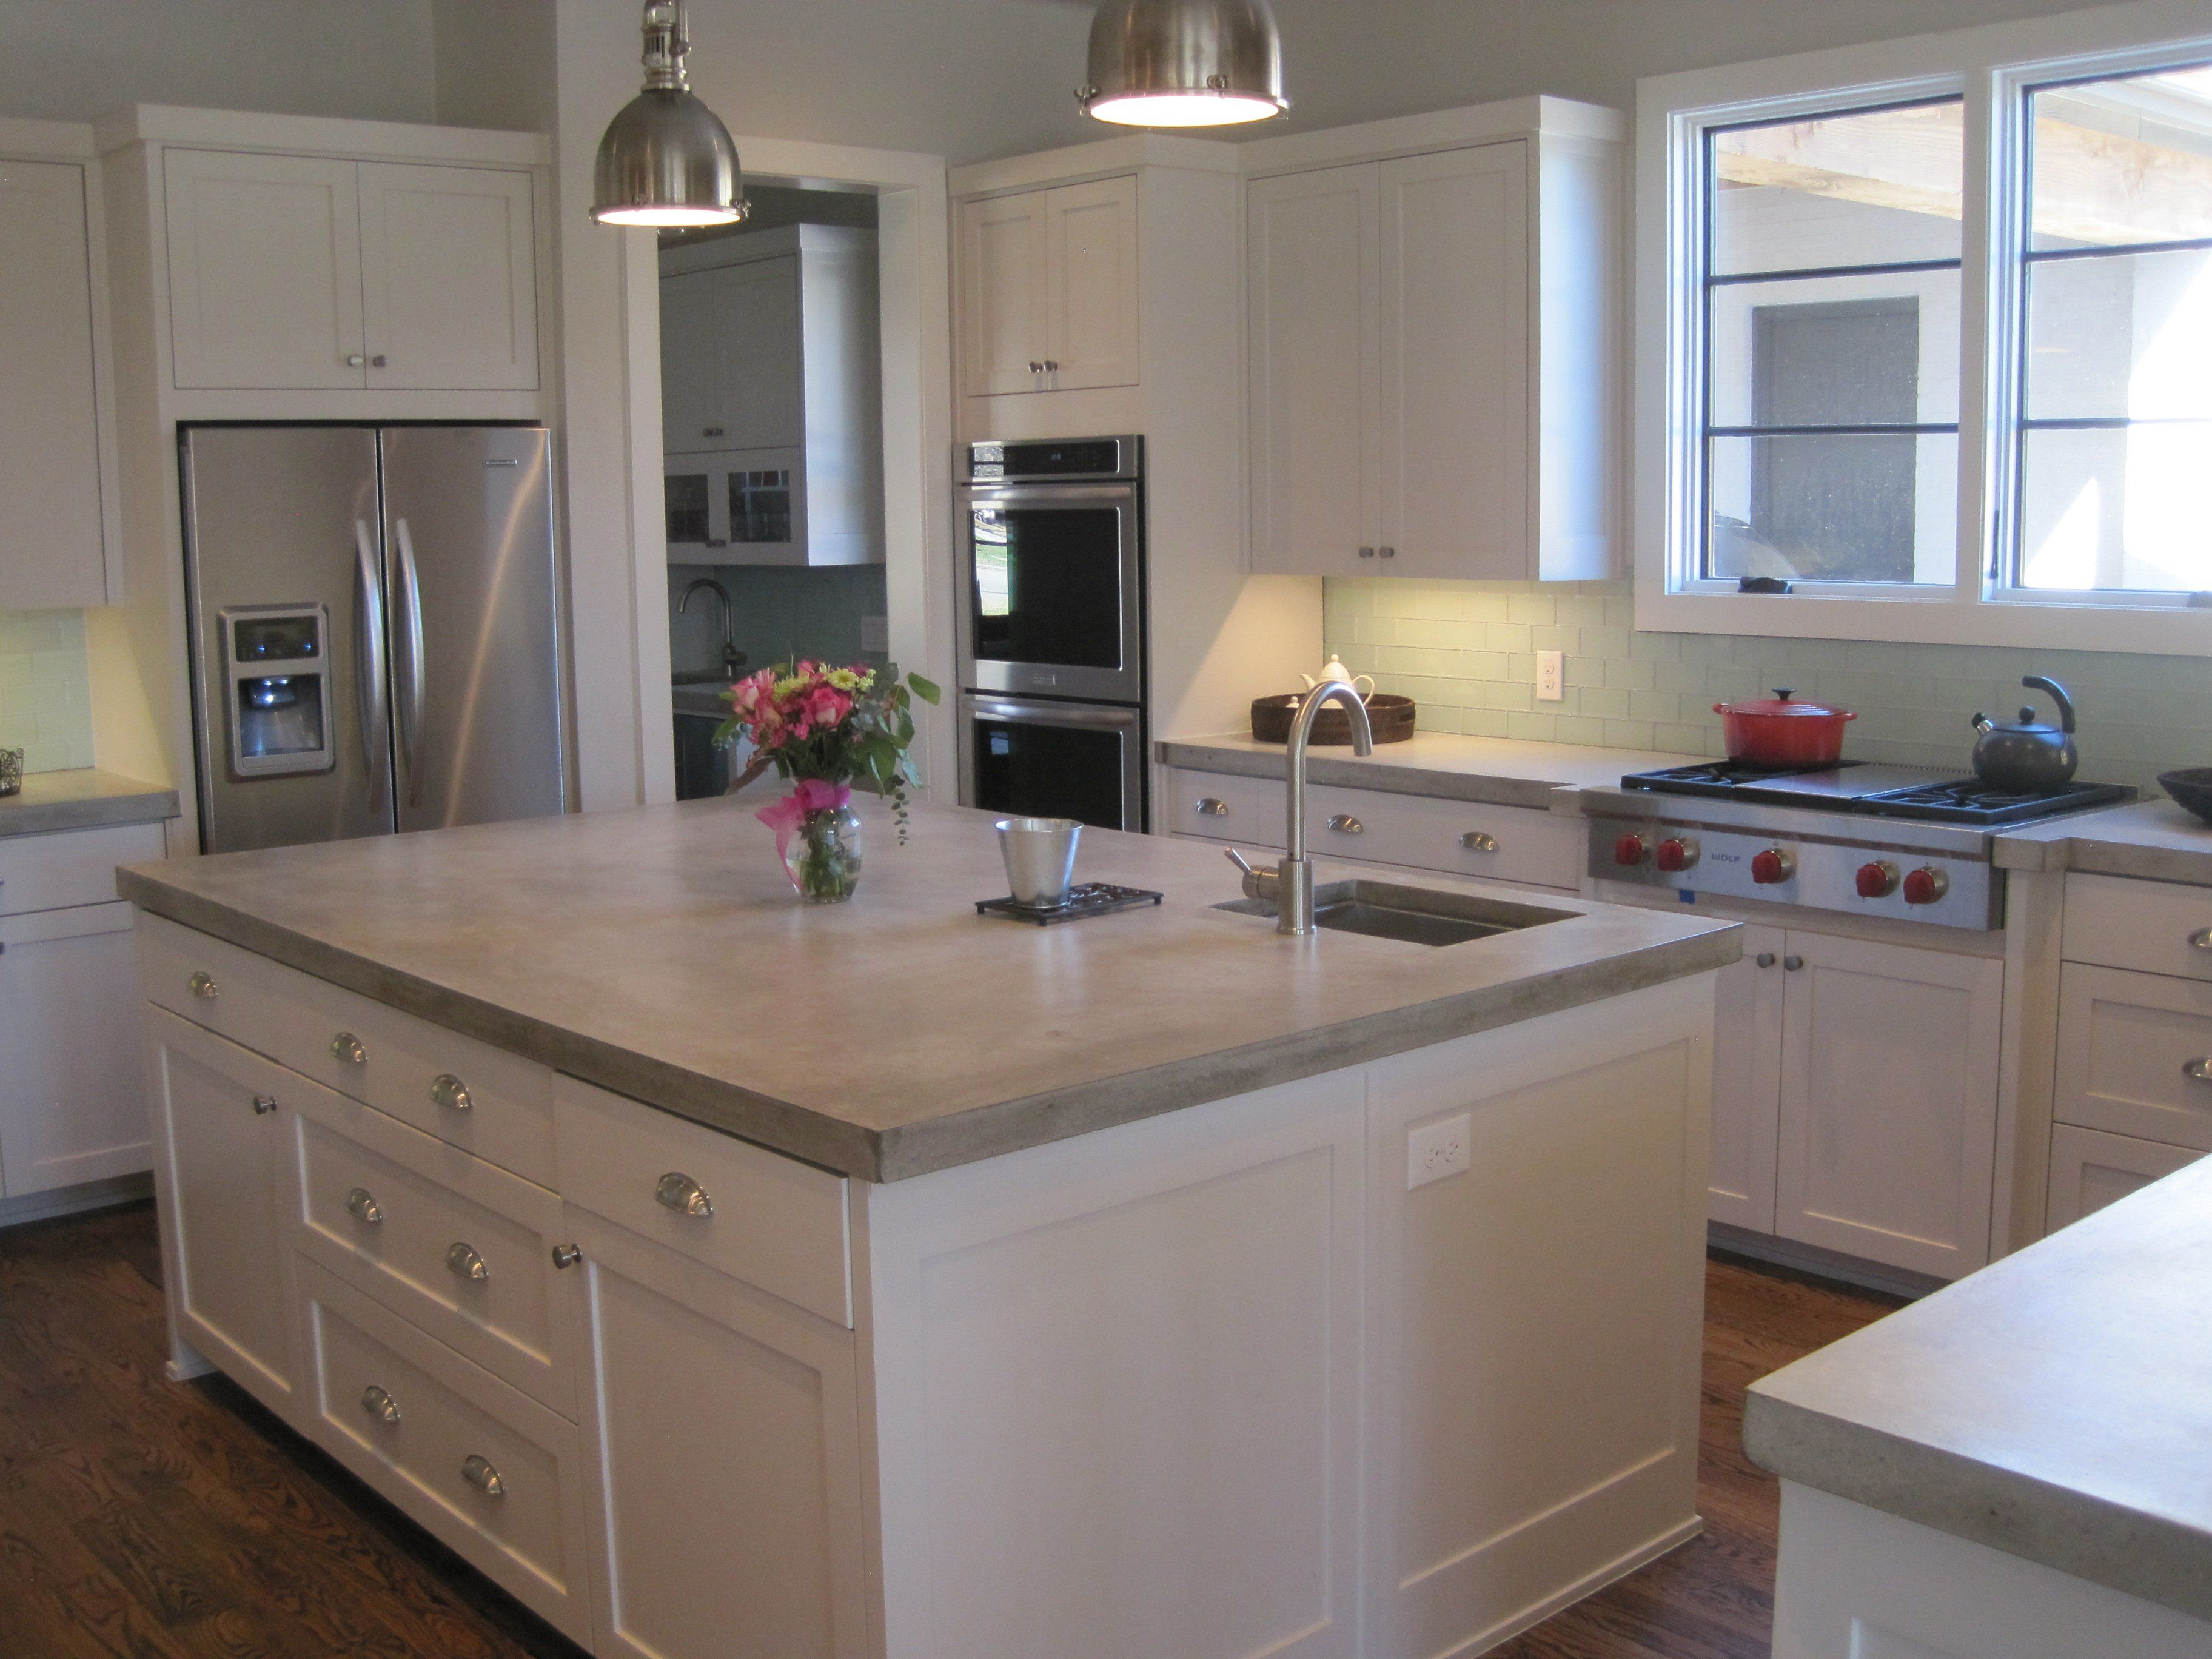 Kitchen Island Countertops Seating Concrete Our House Pinterest